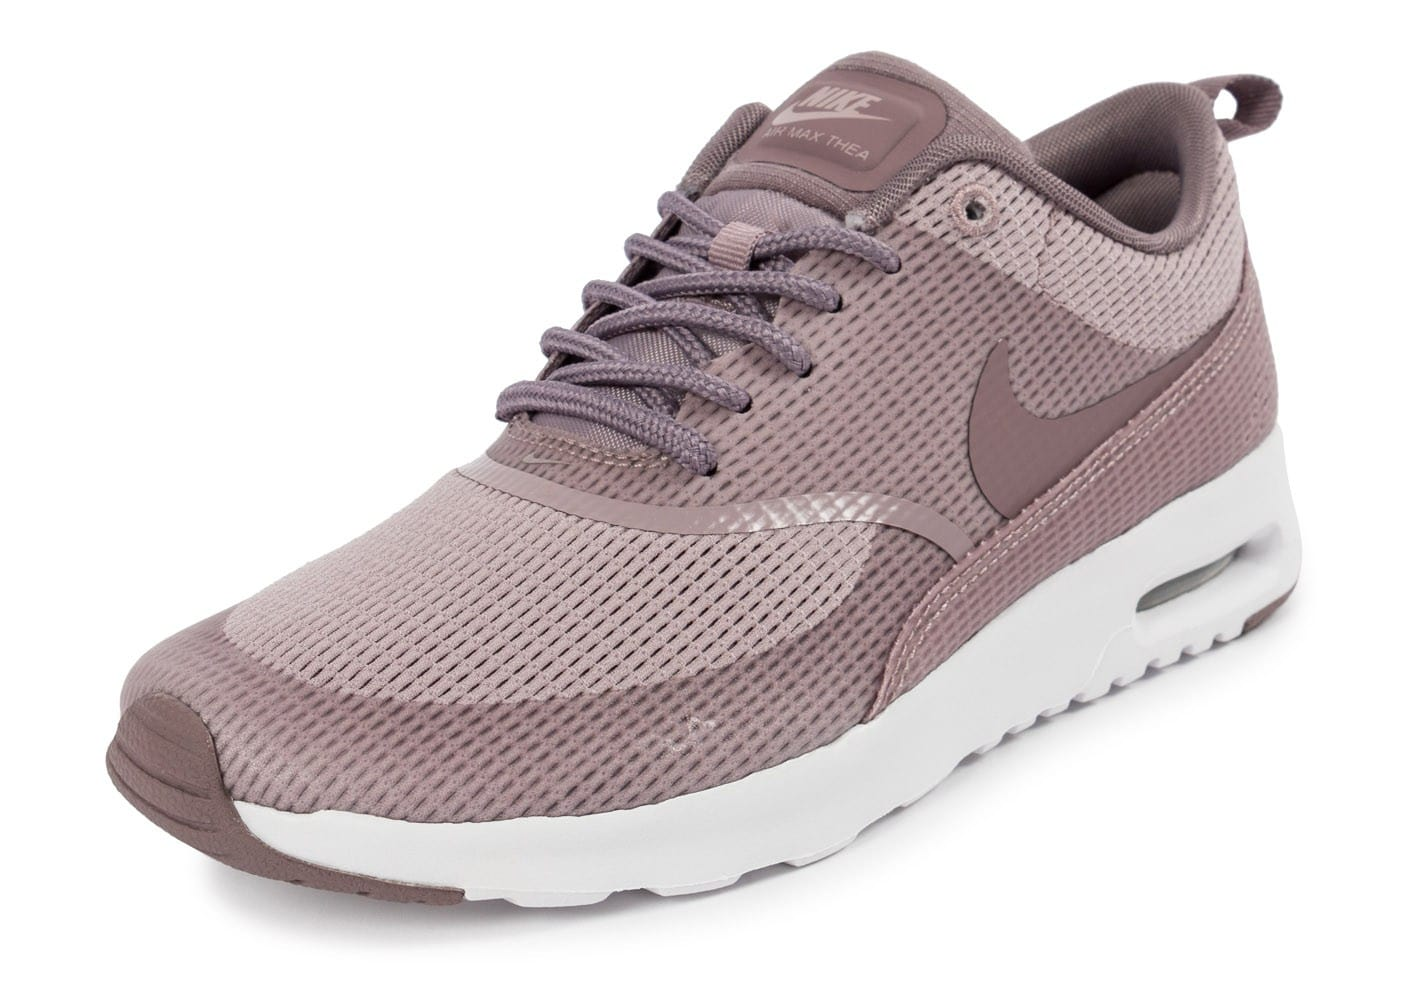 nike air max thea txt plum flog basket femme nike sb dunk high. Black Bedroom Furniture Sets. Home Design Ideas